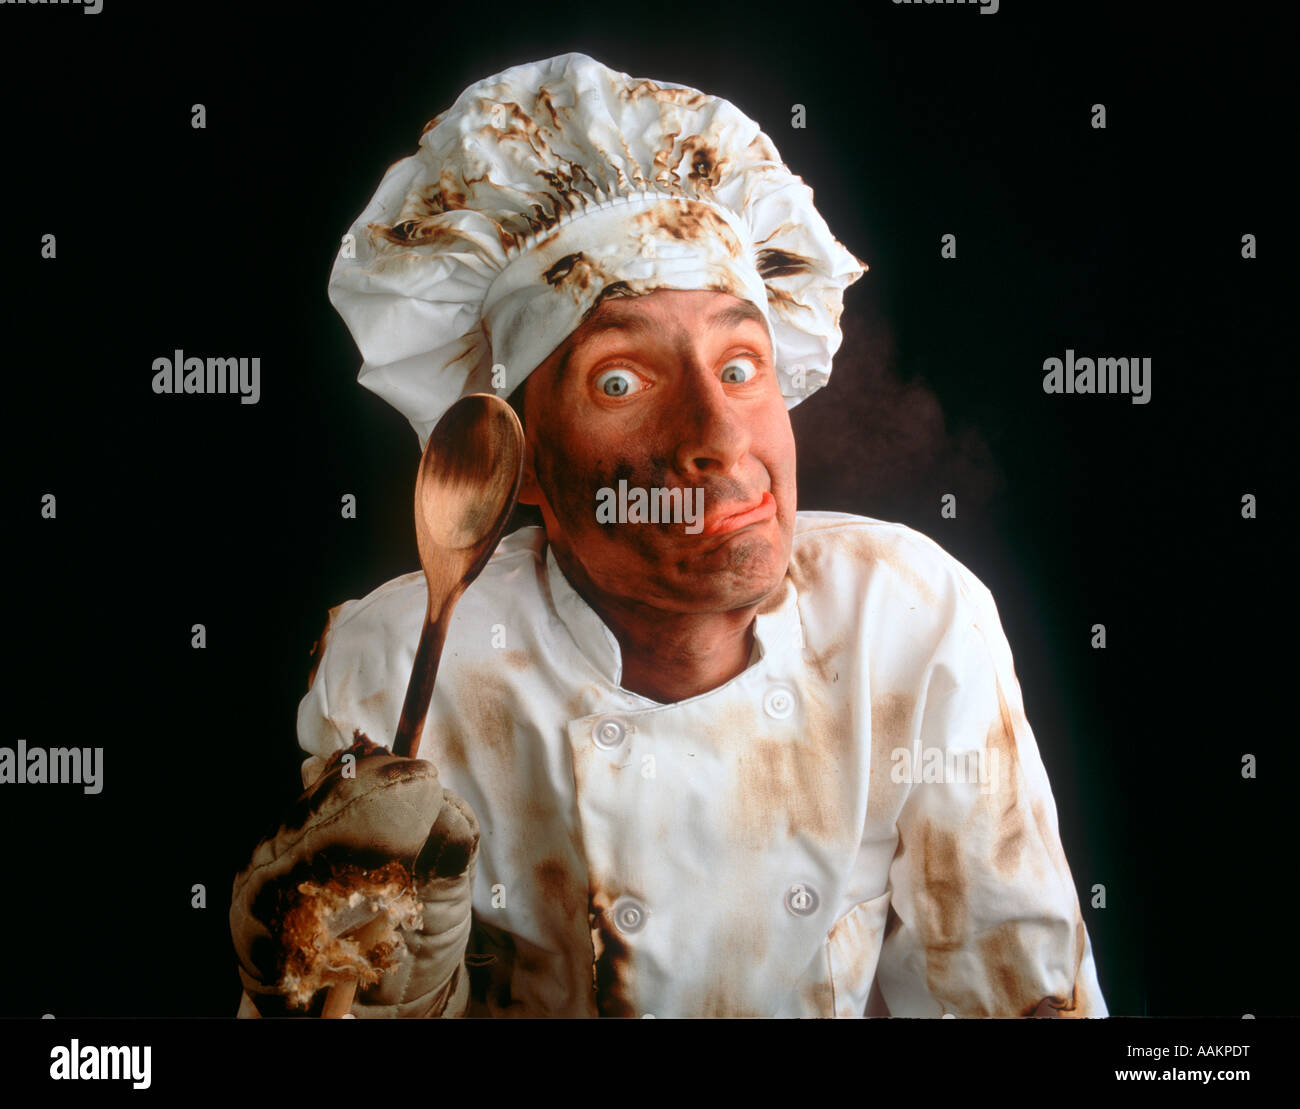 CHARACTER CHEF WITH FUNNY FACE HOLDING SPOON LOOKING DIRTY AND SLIGHTLY BURNED - Stock Image